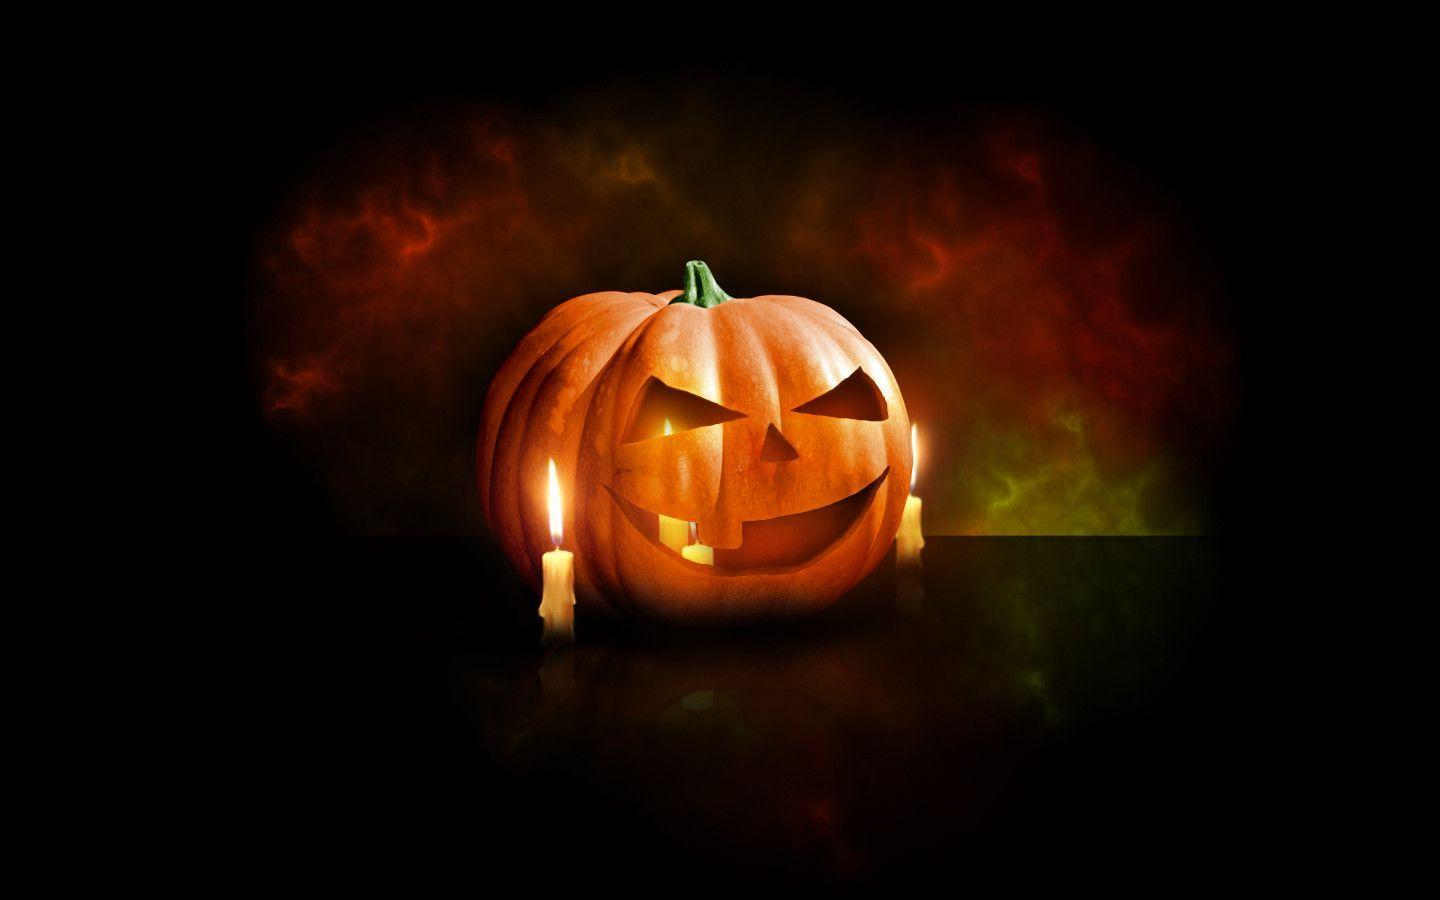 Design a Halloween Pumpkin Wallpapers in Photoshop